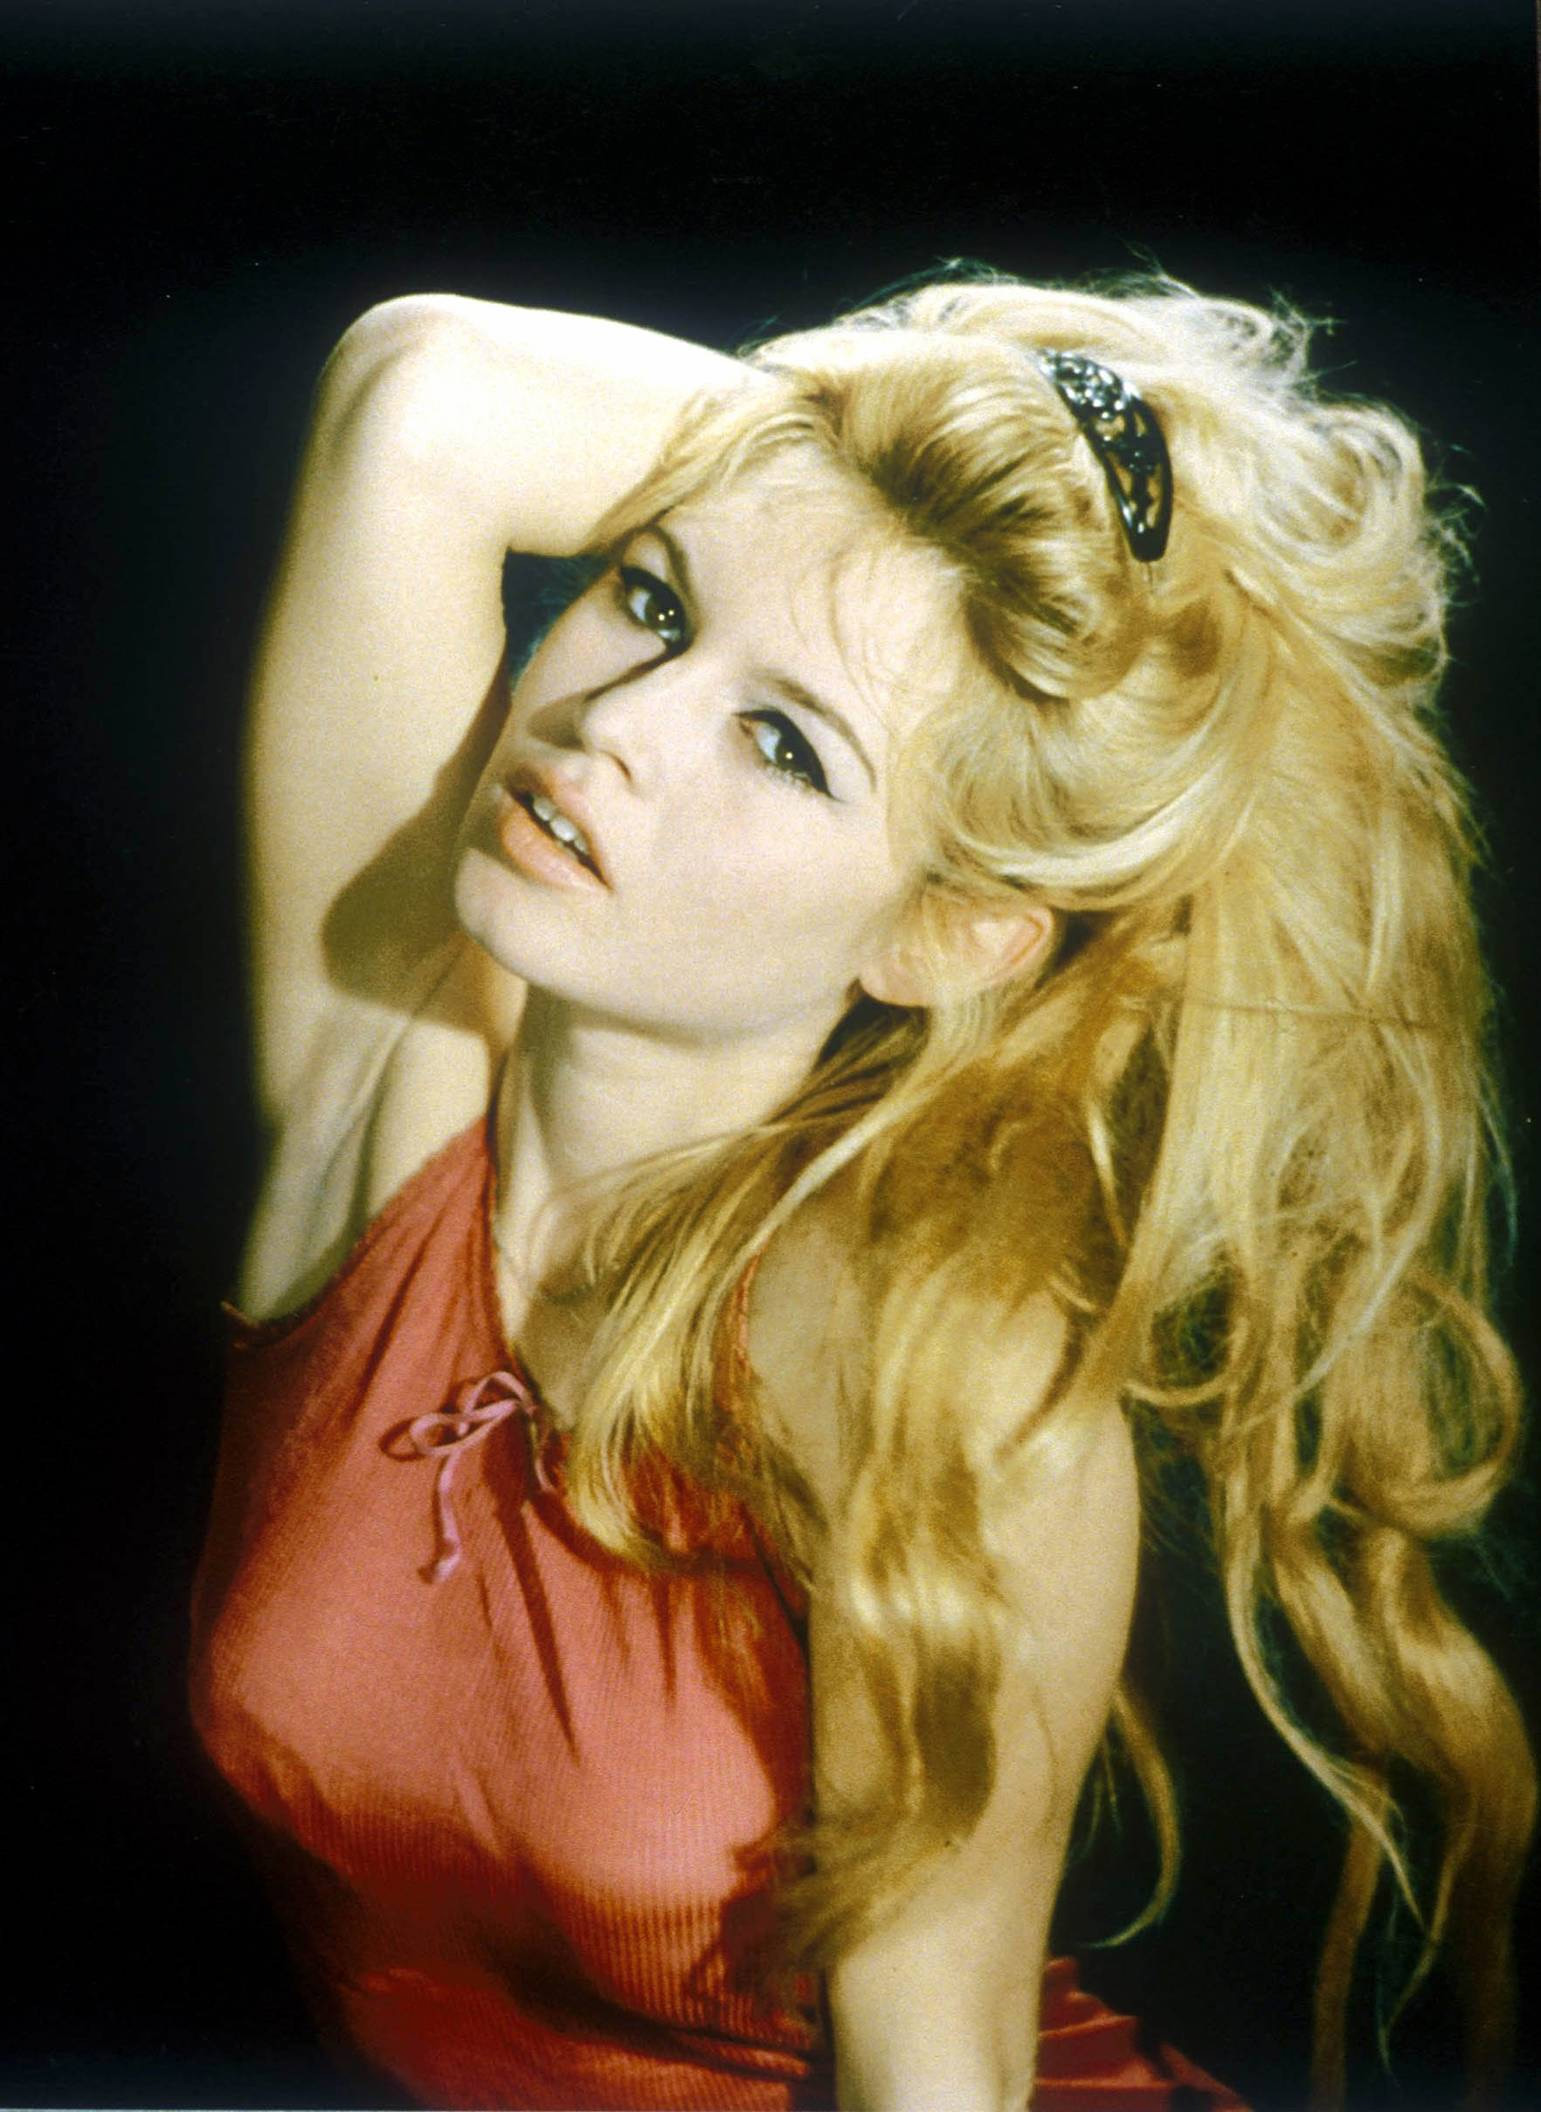 1000+ images about Brigitte Bardot on Pinterest | Brigitte ...